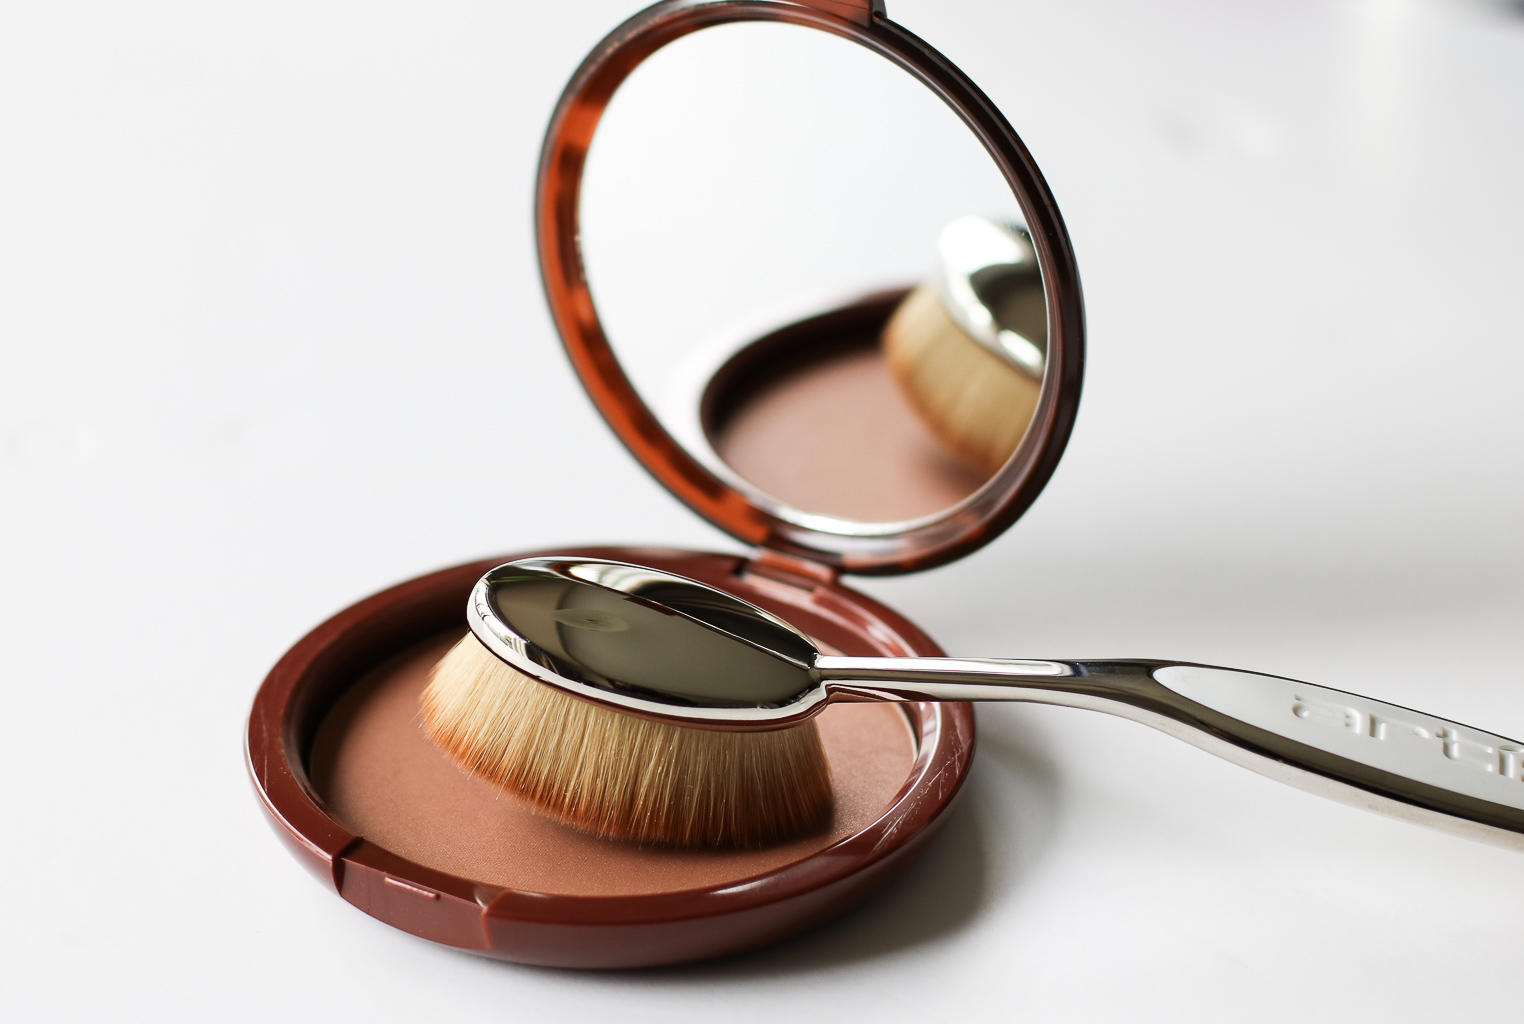 How To Get Flawless, Airbrushed Skin: Artis Brush Review | Style Domination by Dominique Baker